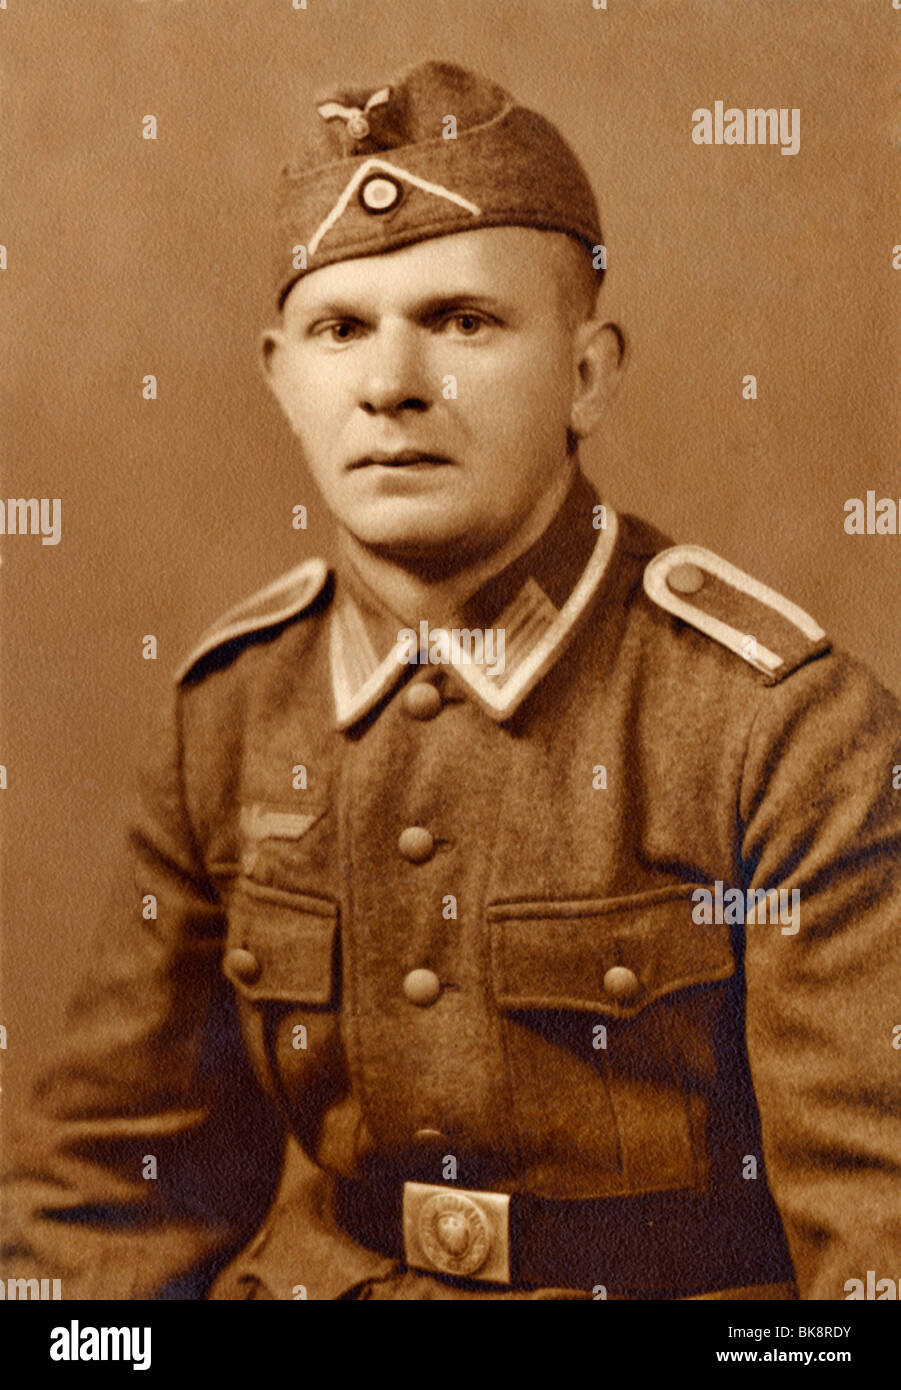 Soldier's portrait, historical photograph, around 1940 - Stock Image